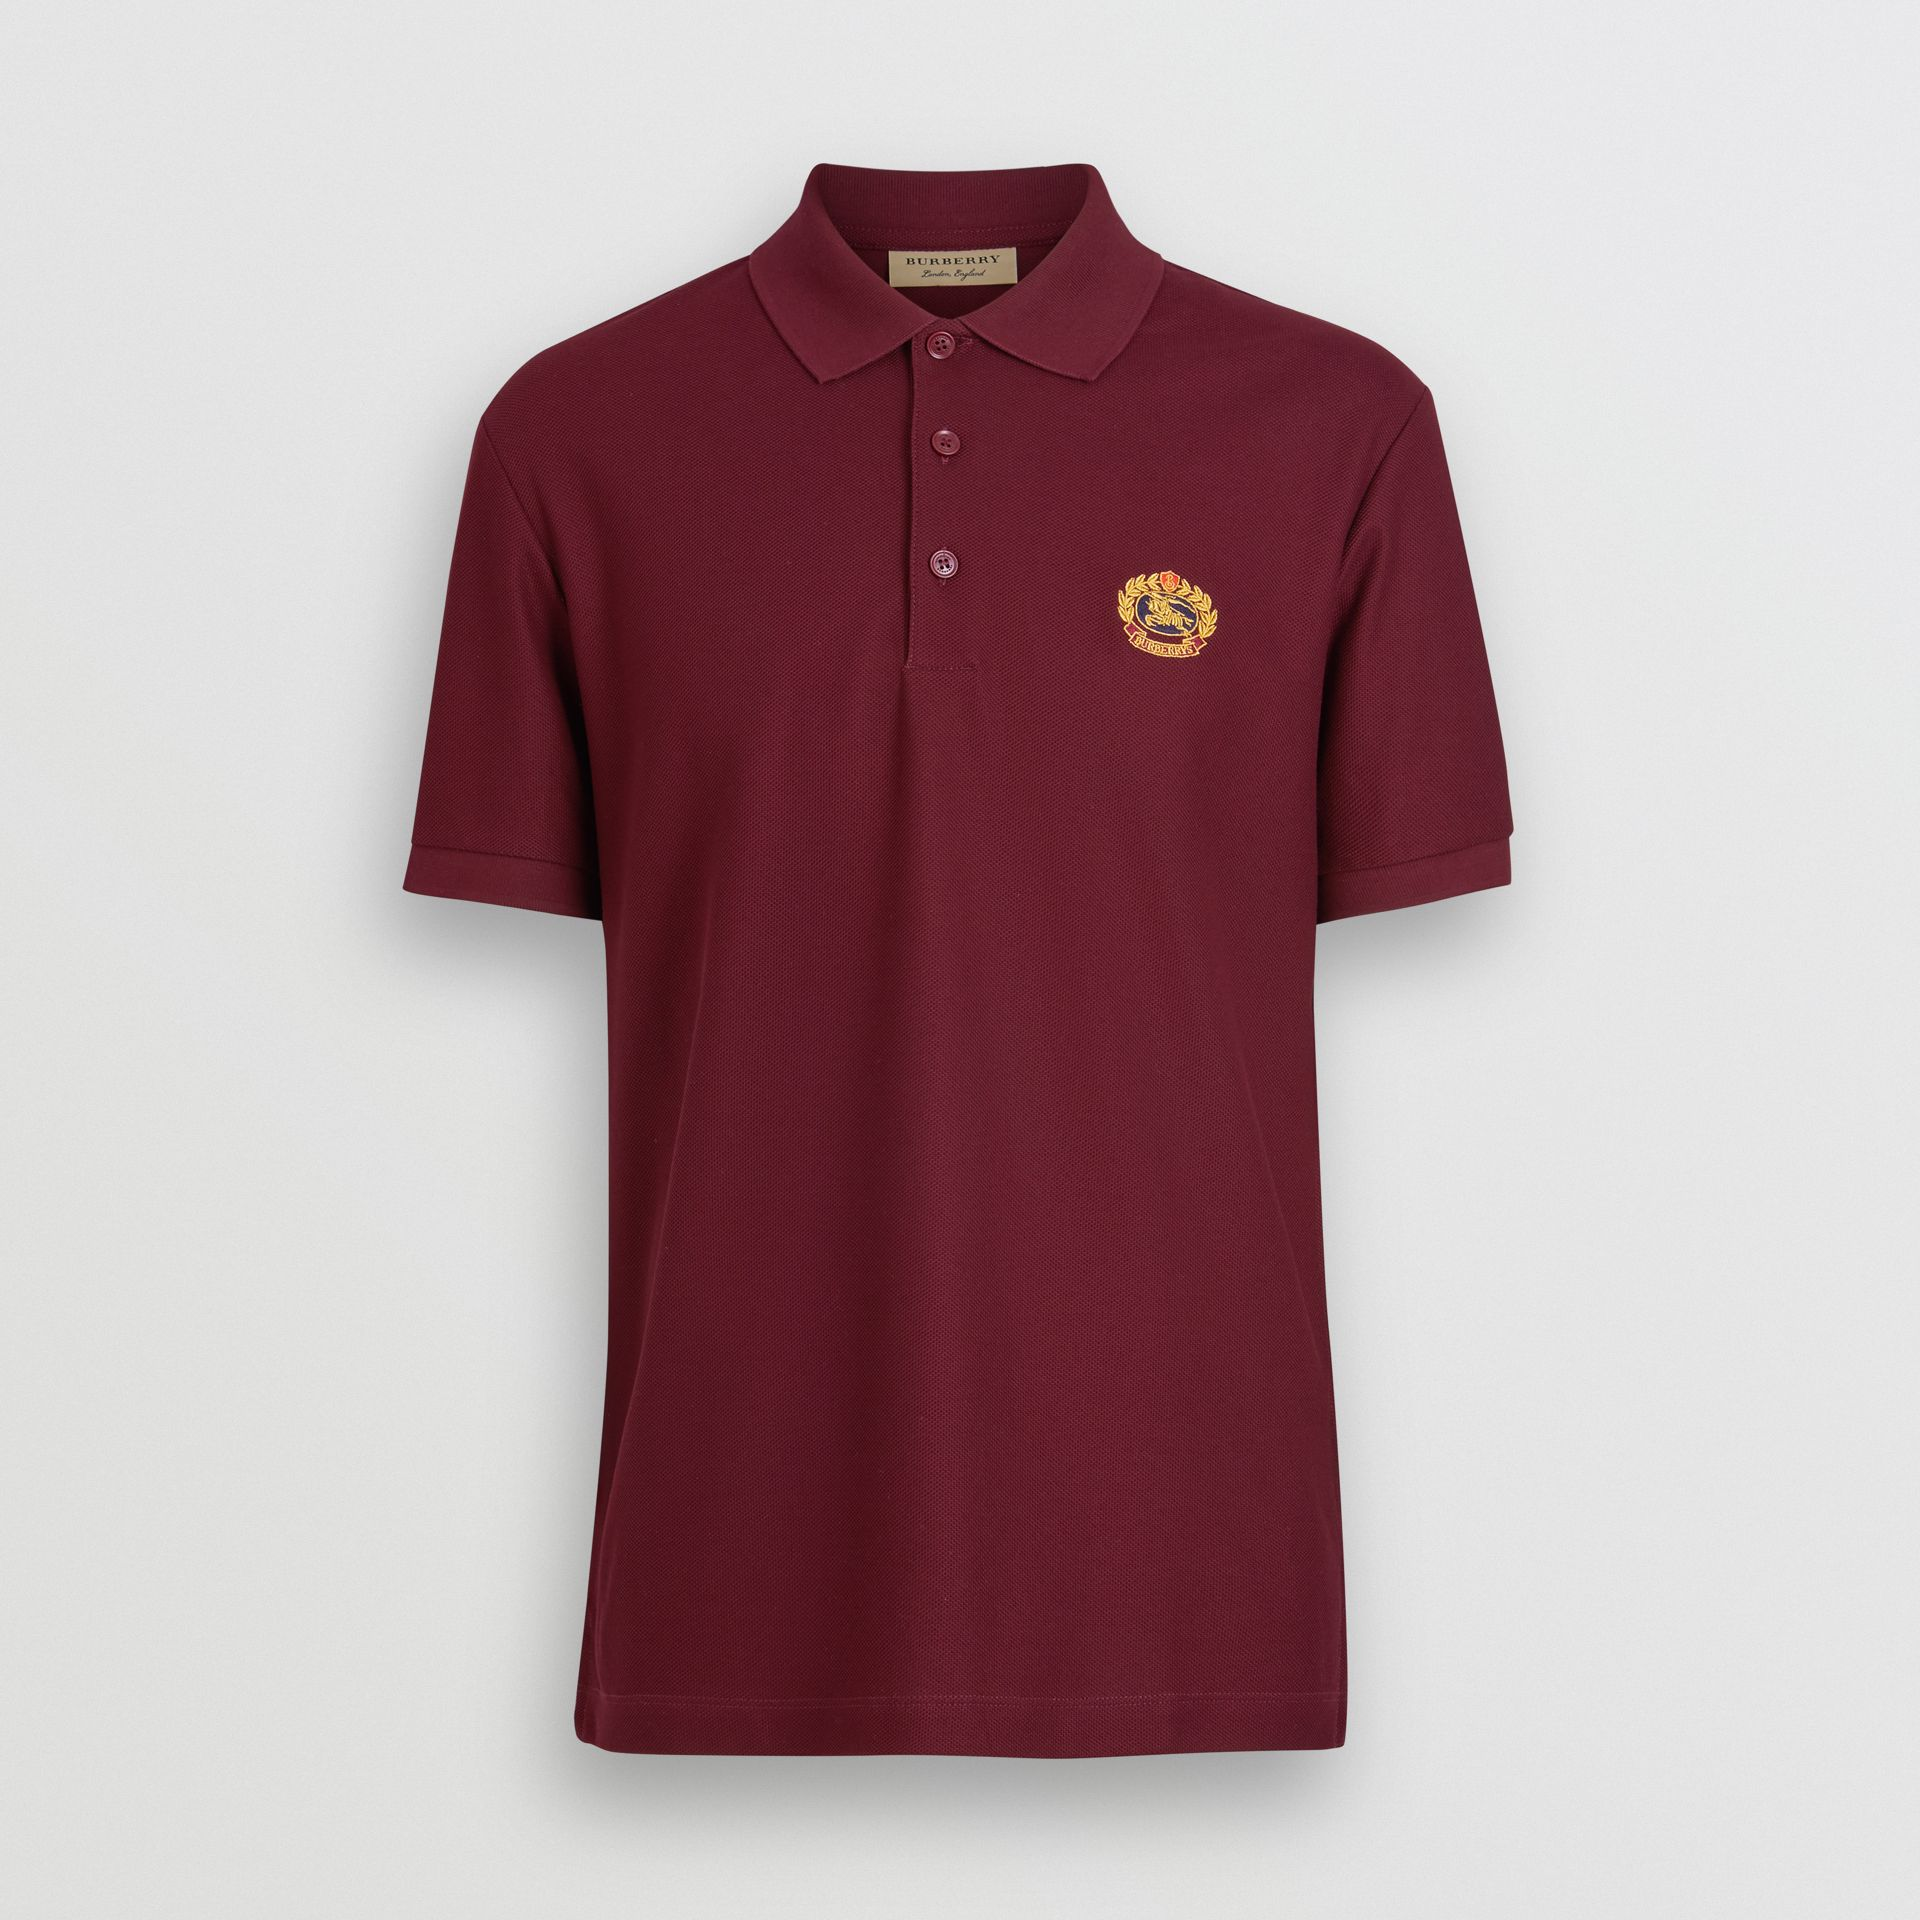 Archive Logo Cotton Piqué Polo Shirt in Burgundy - Men | Burberry United States - gallery image 3